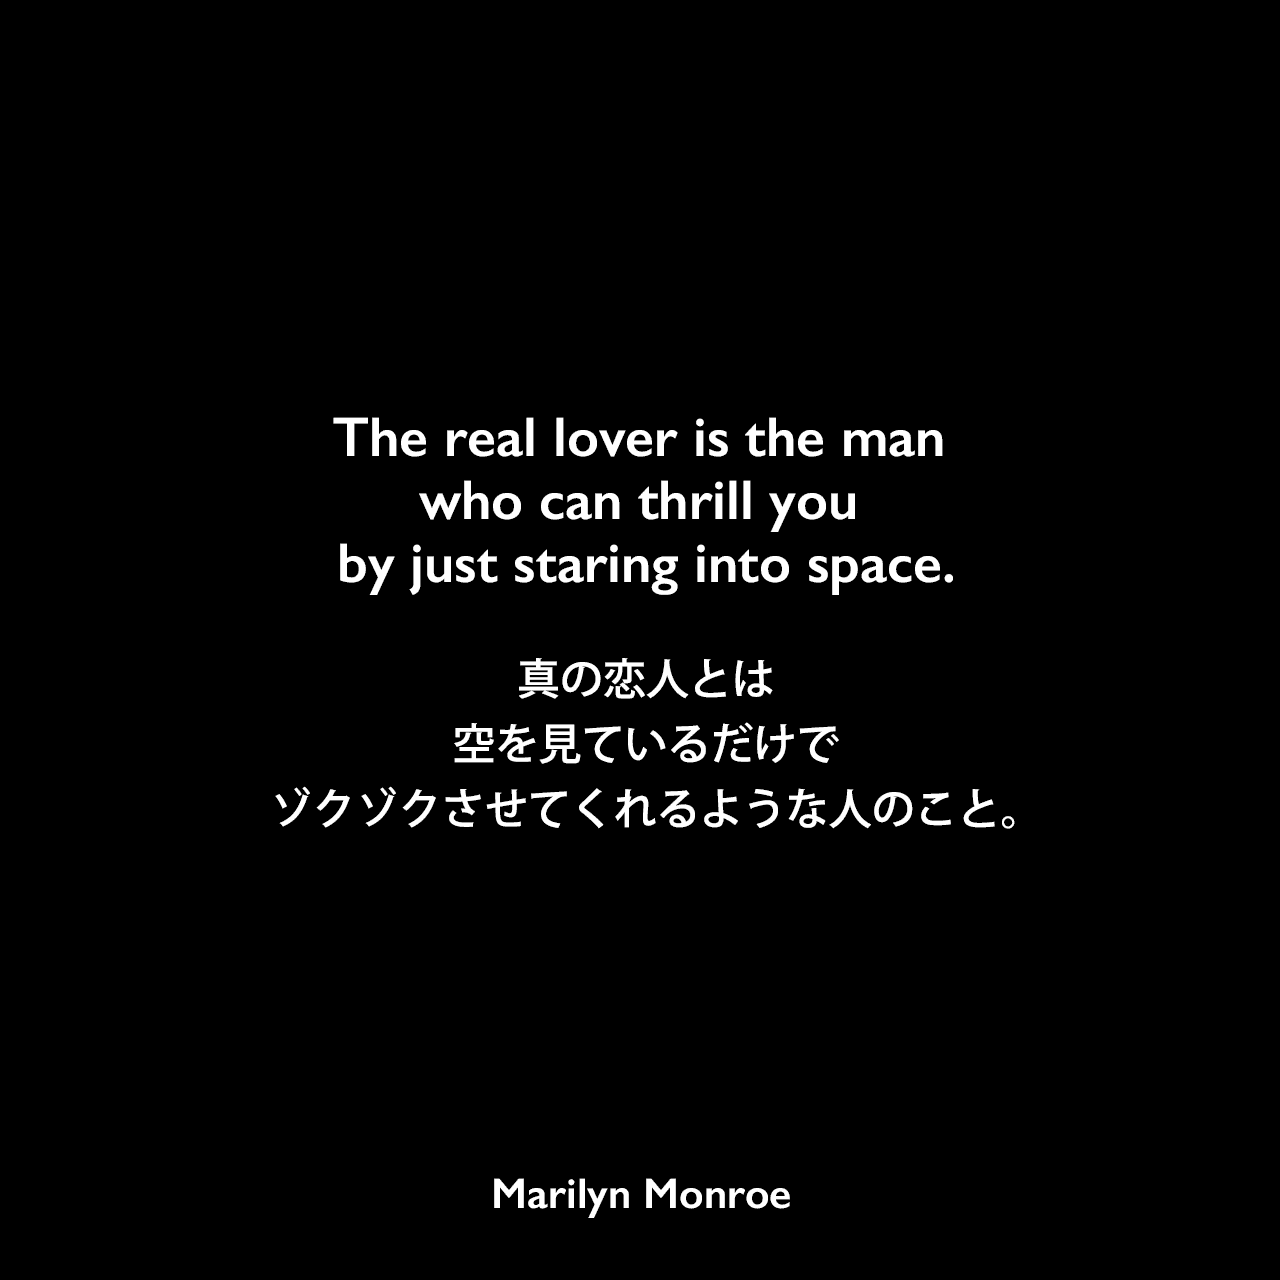 The real lover is the man who can thrill you by just staring into space.真の恋人とは、空を見ているだけでゾクゾクさせてくれるような人のこと。